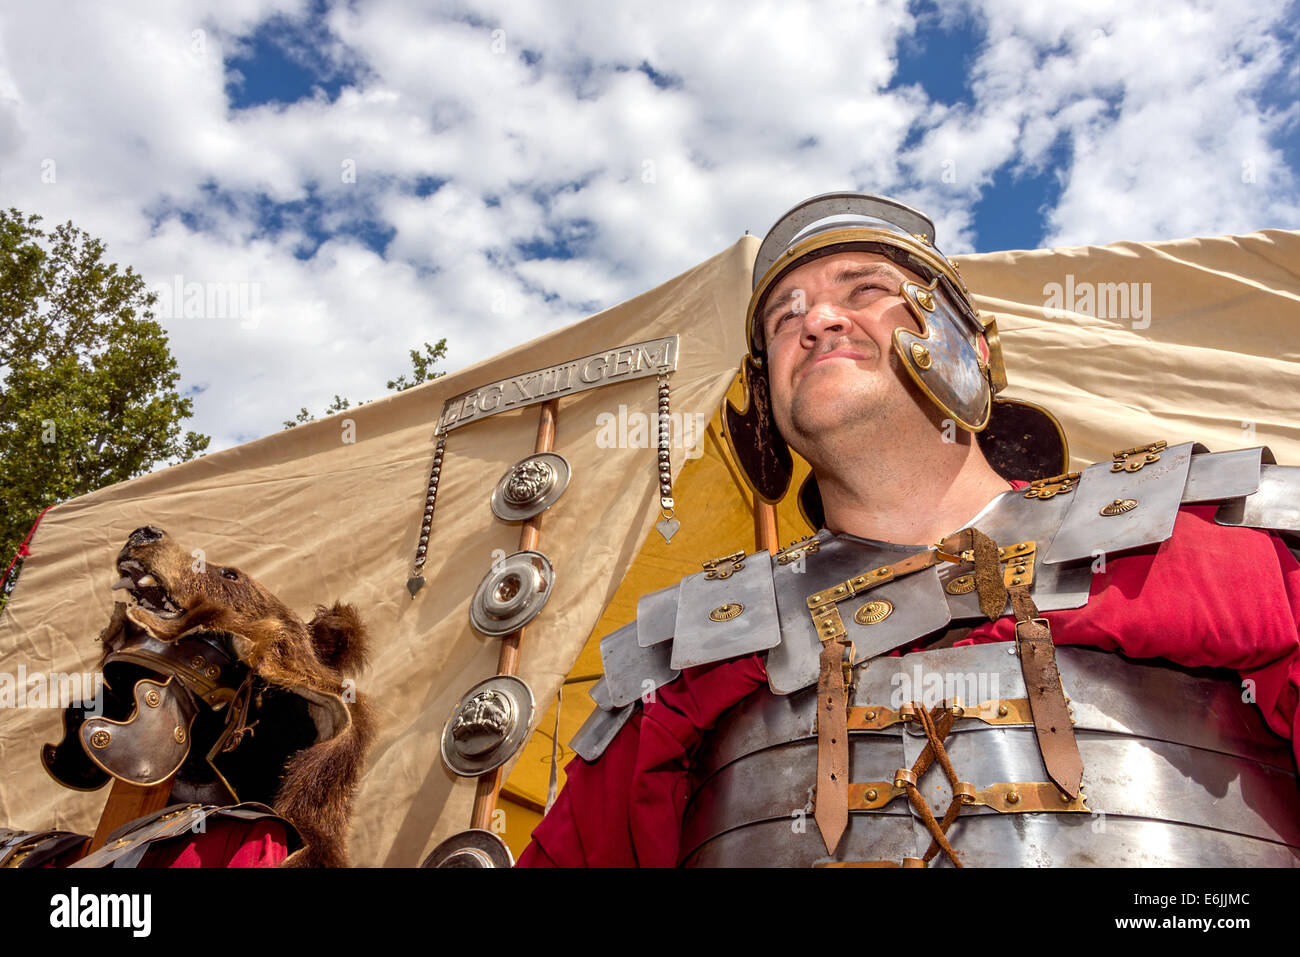 Roman soldier in Roman camp in traditional military dress - Stock Image